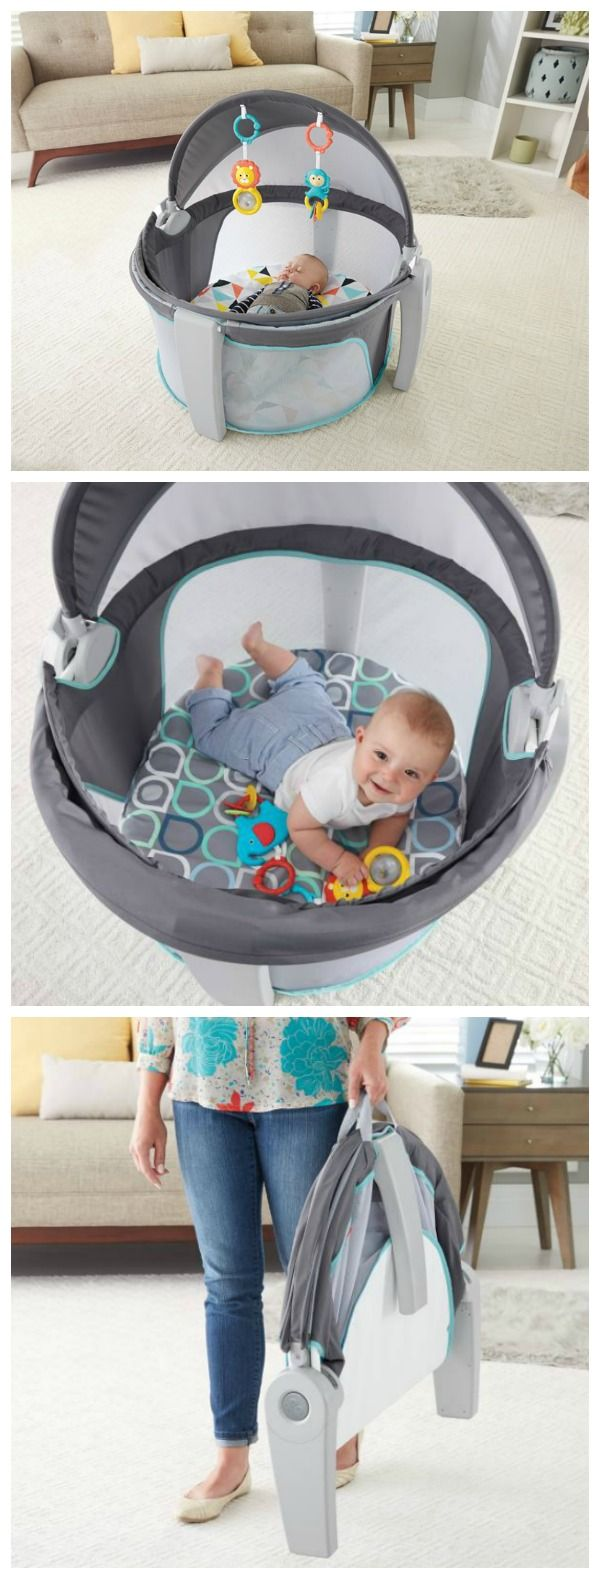 2 functions in 1 – a play space and a comfy napping spot, perfect for when you and baby are on the go! #affiliate